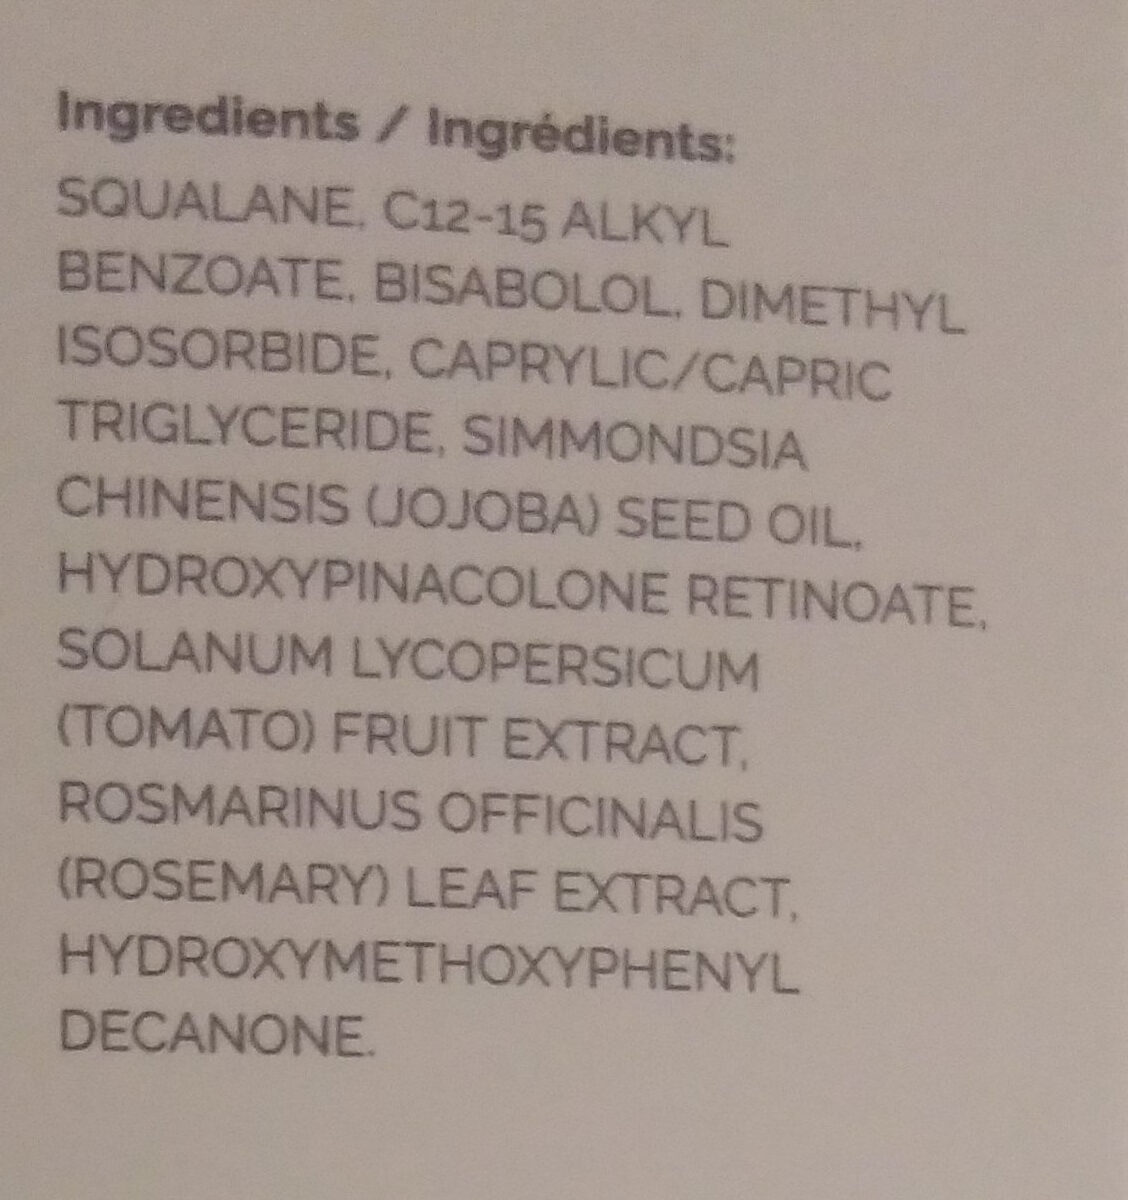 Granactive Retinoid 5% in Squalane - Ingredients - en